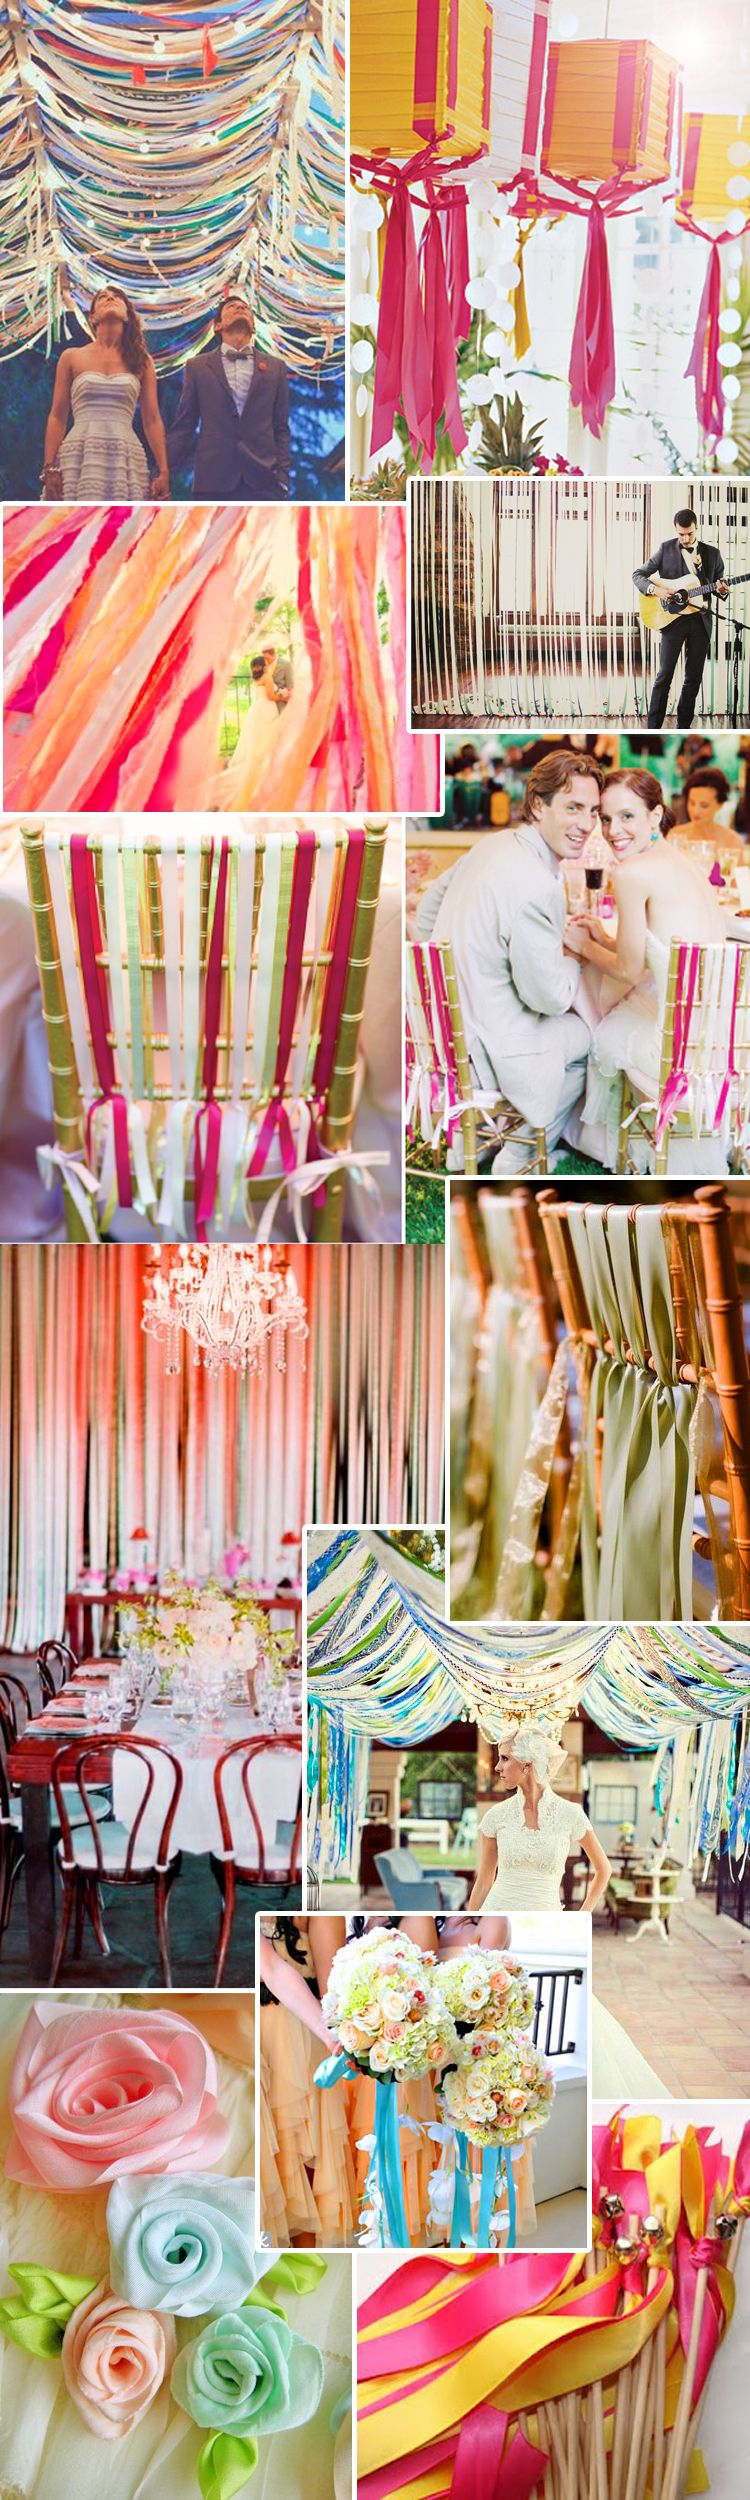 Wedding Ribbon Decorations Ideas Crafty Para Tu Boda Pinterest